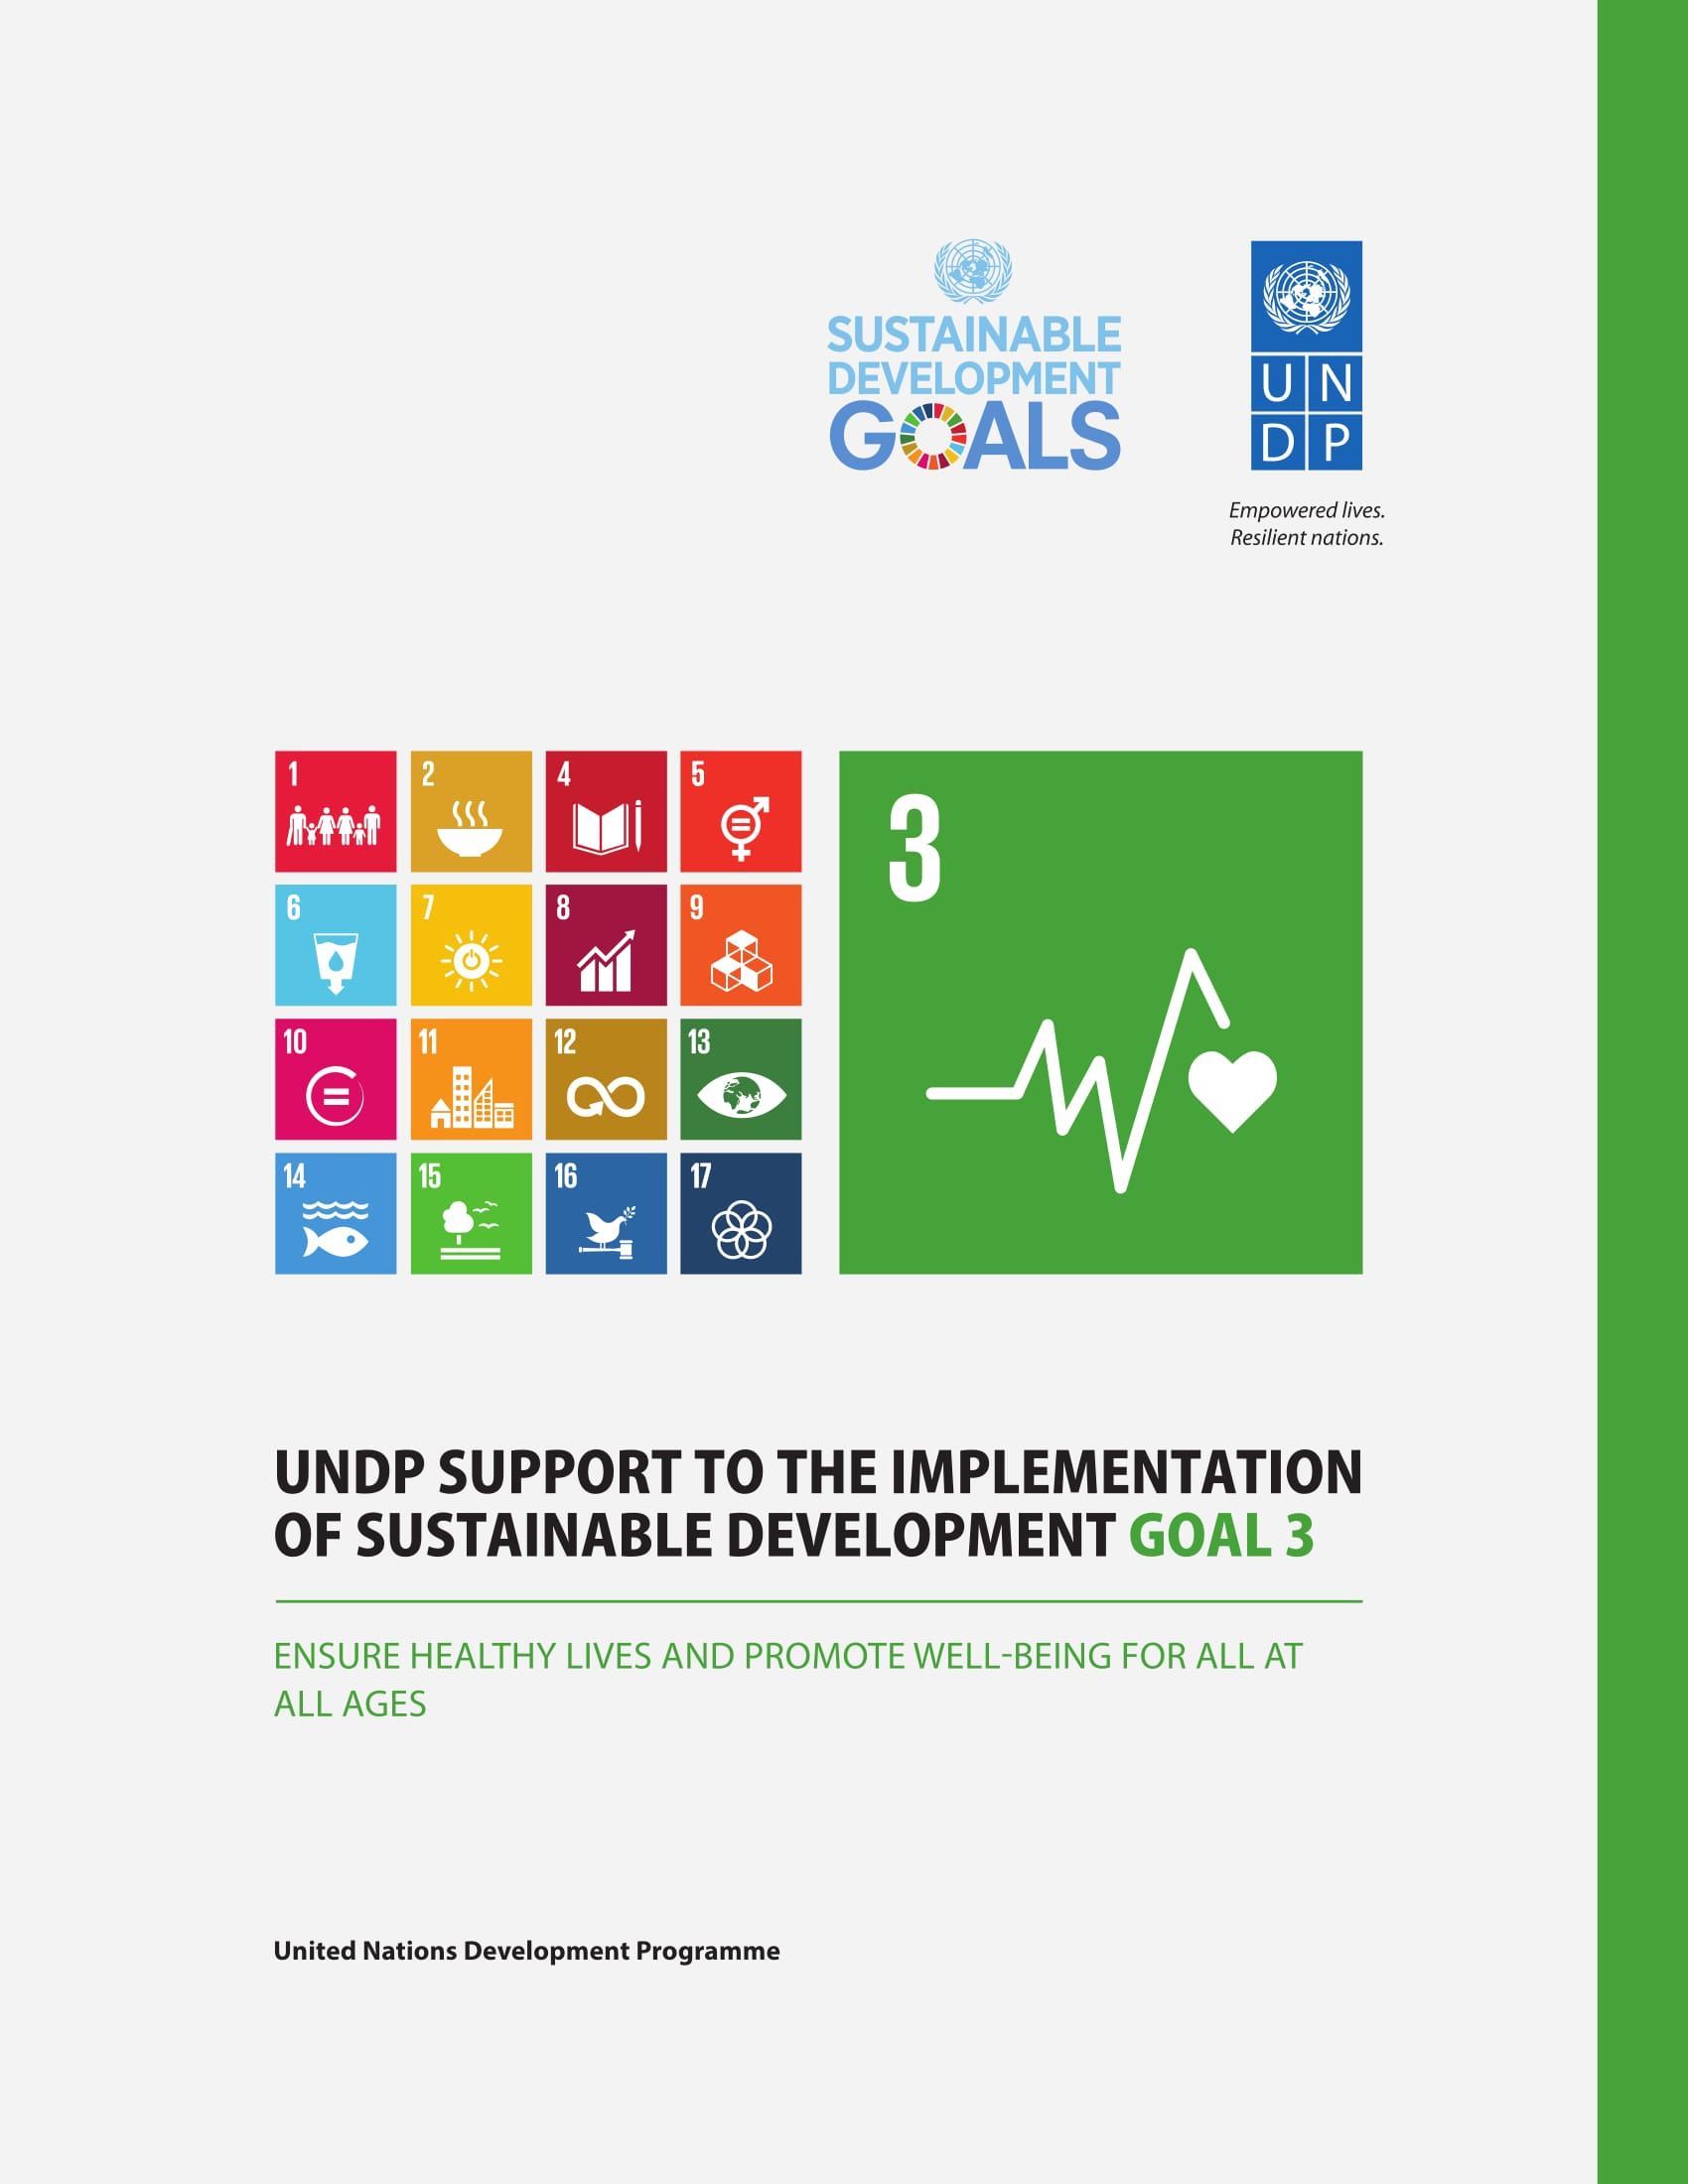 UNDP Support to the Implementation of Sustainable Development Goal 3